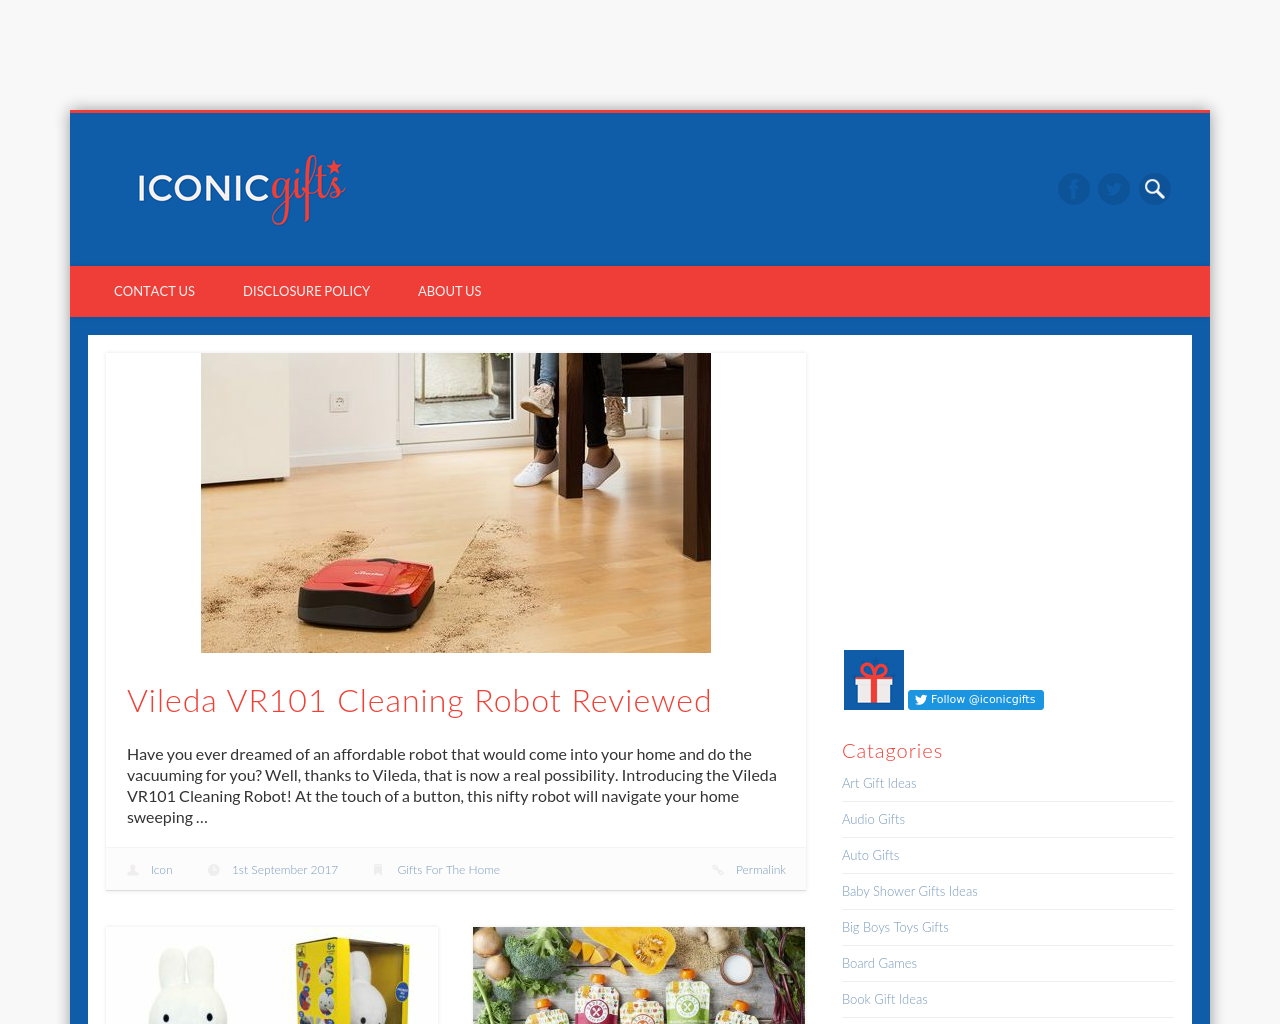 Iconic-Gifts-Advertising-Reviews-Pricing